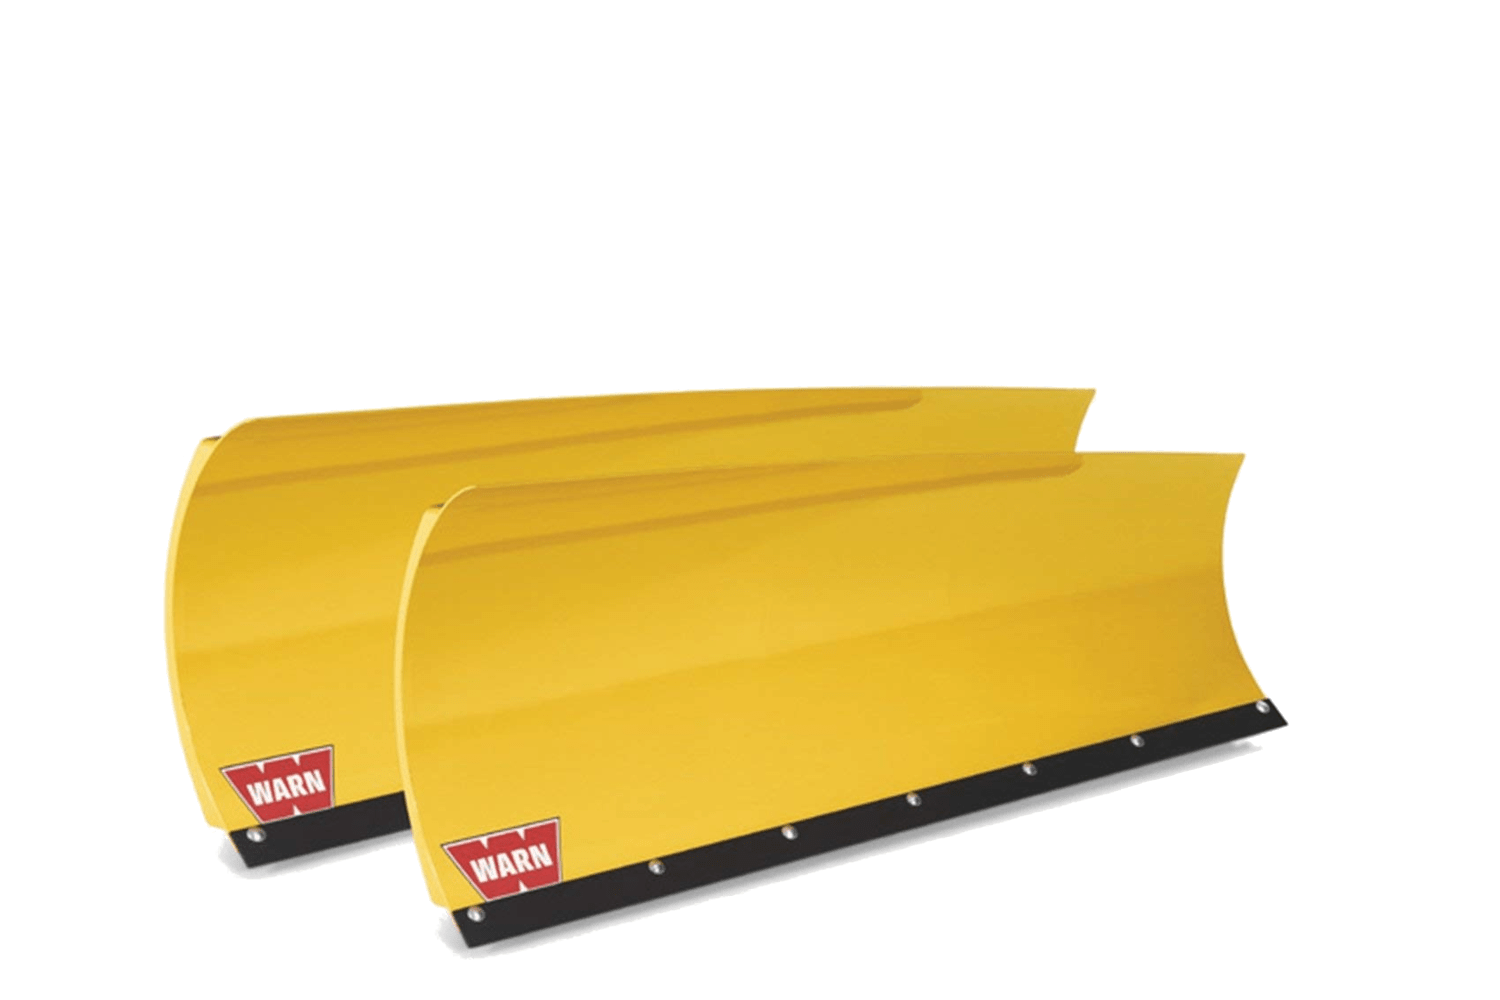 warn plow systems tapered plow blade